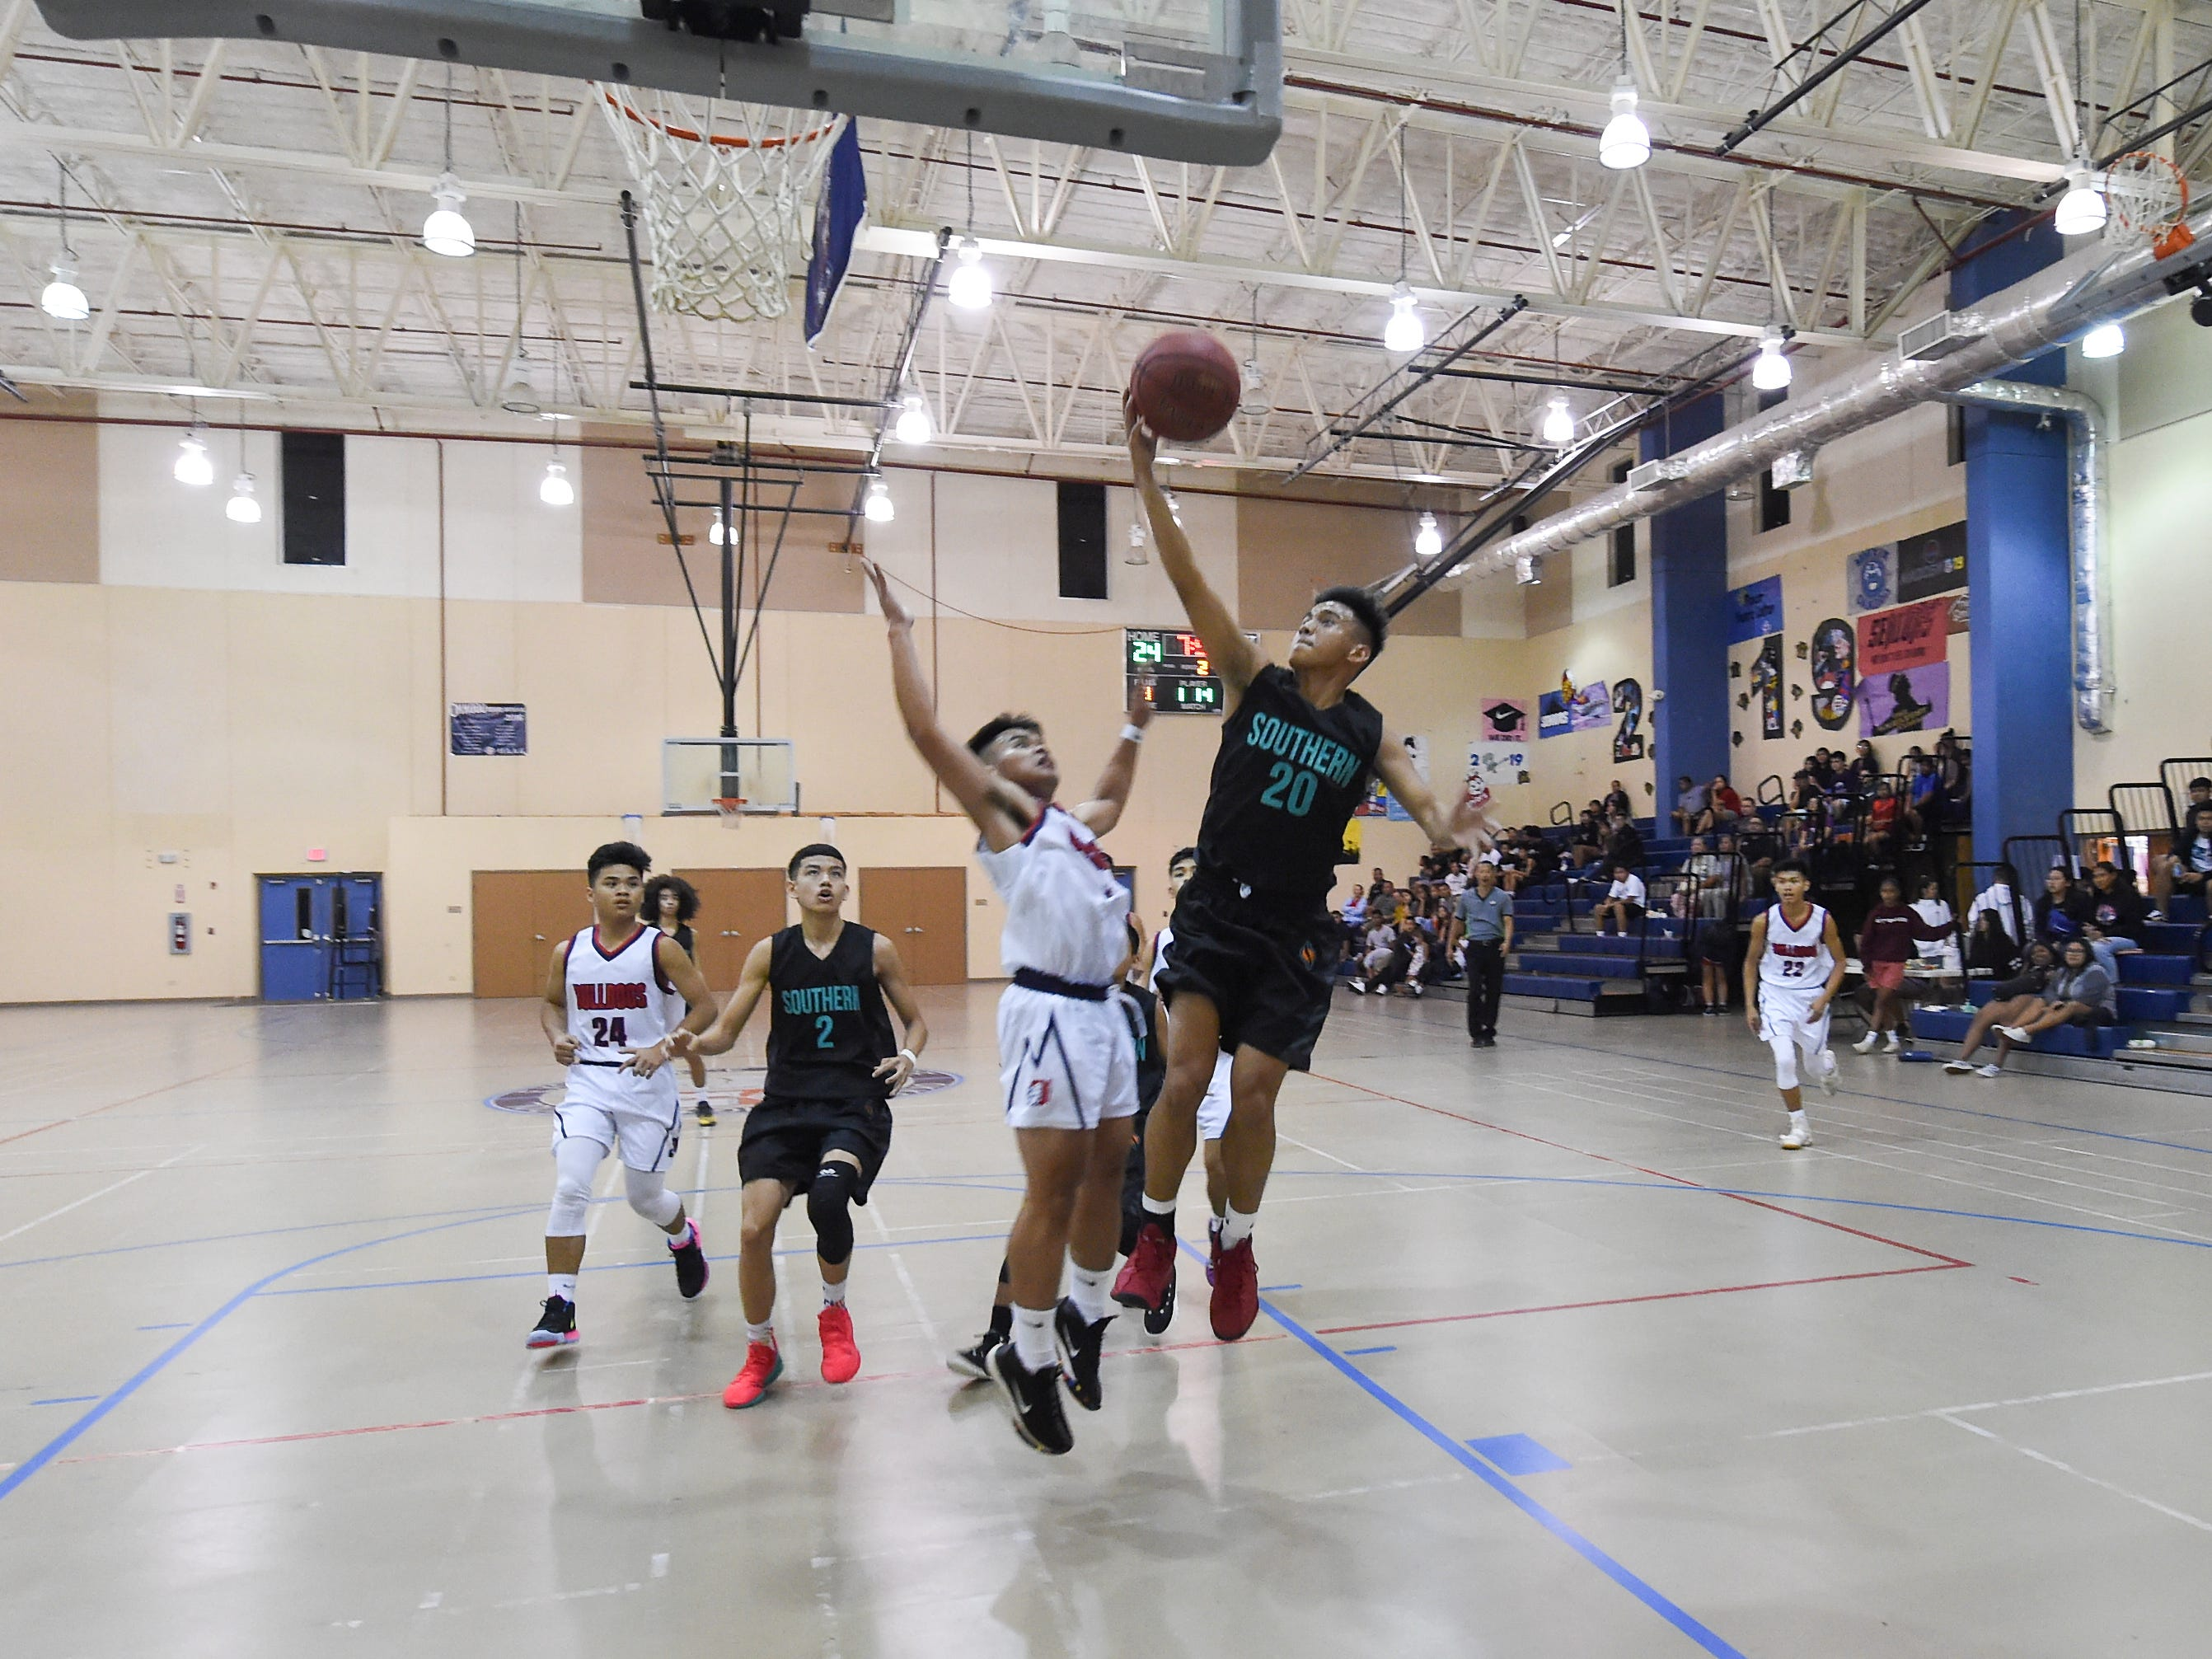 Southern Dolphins player Shawn Santiago (20) drives baseline against the Okkodo Bulldogs during their IIAAG Boys' Basketball game at the Okkodo High School Gym, Feb. 8, 2019.